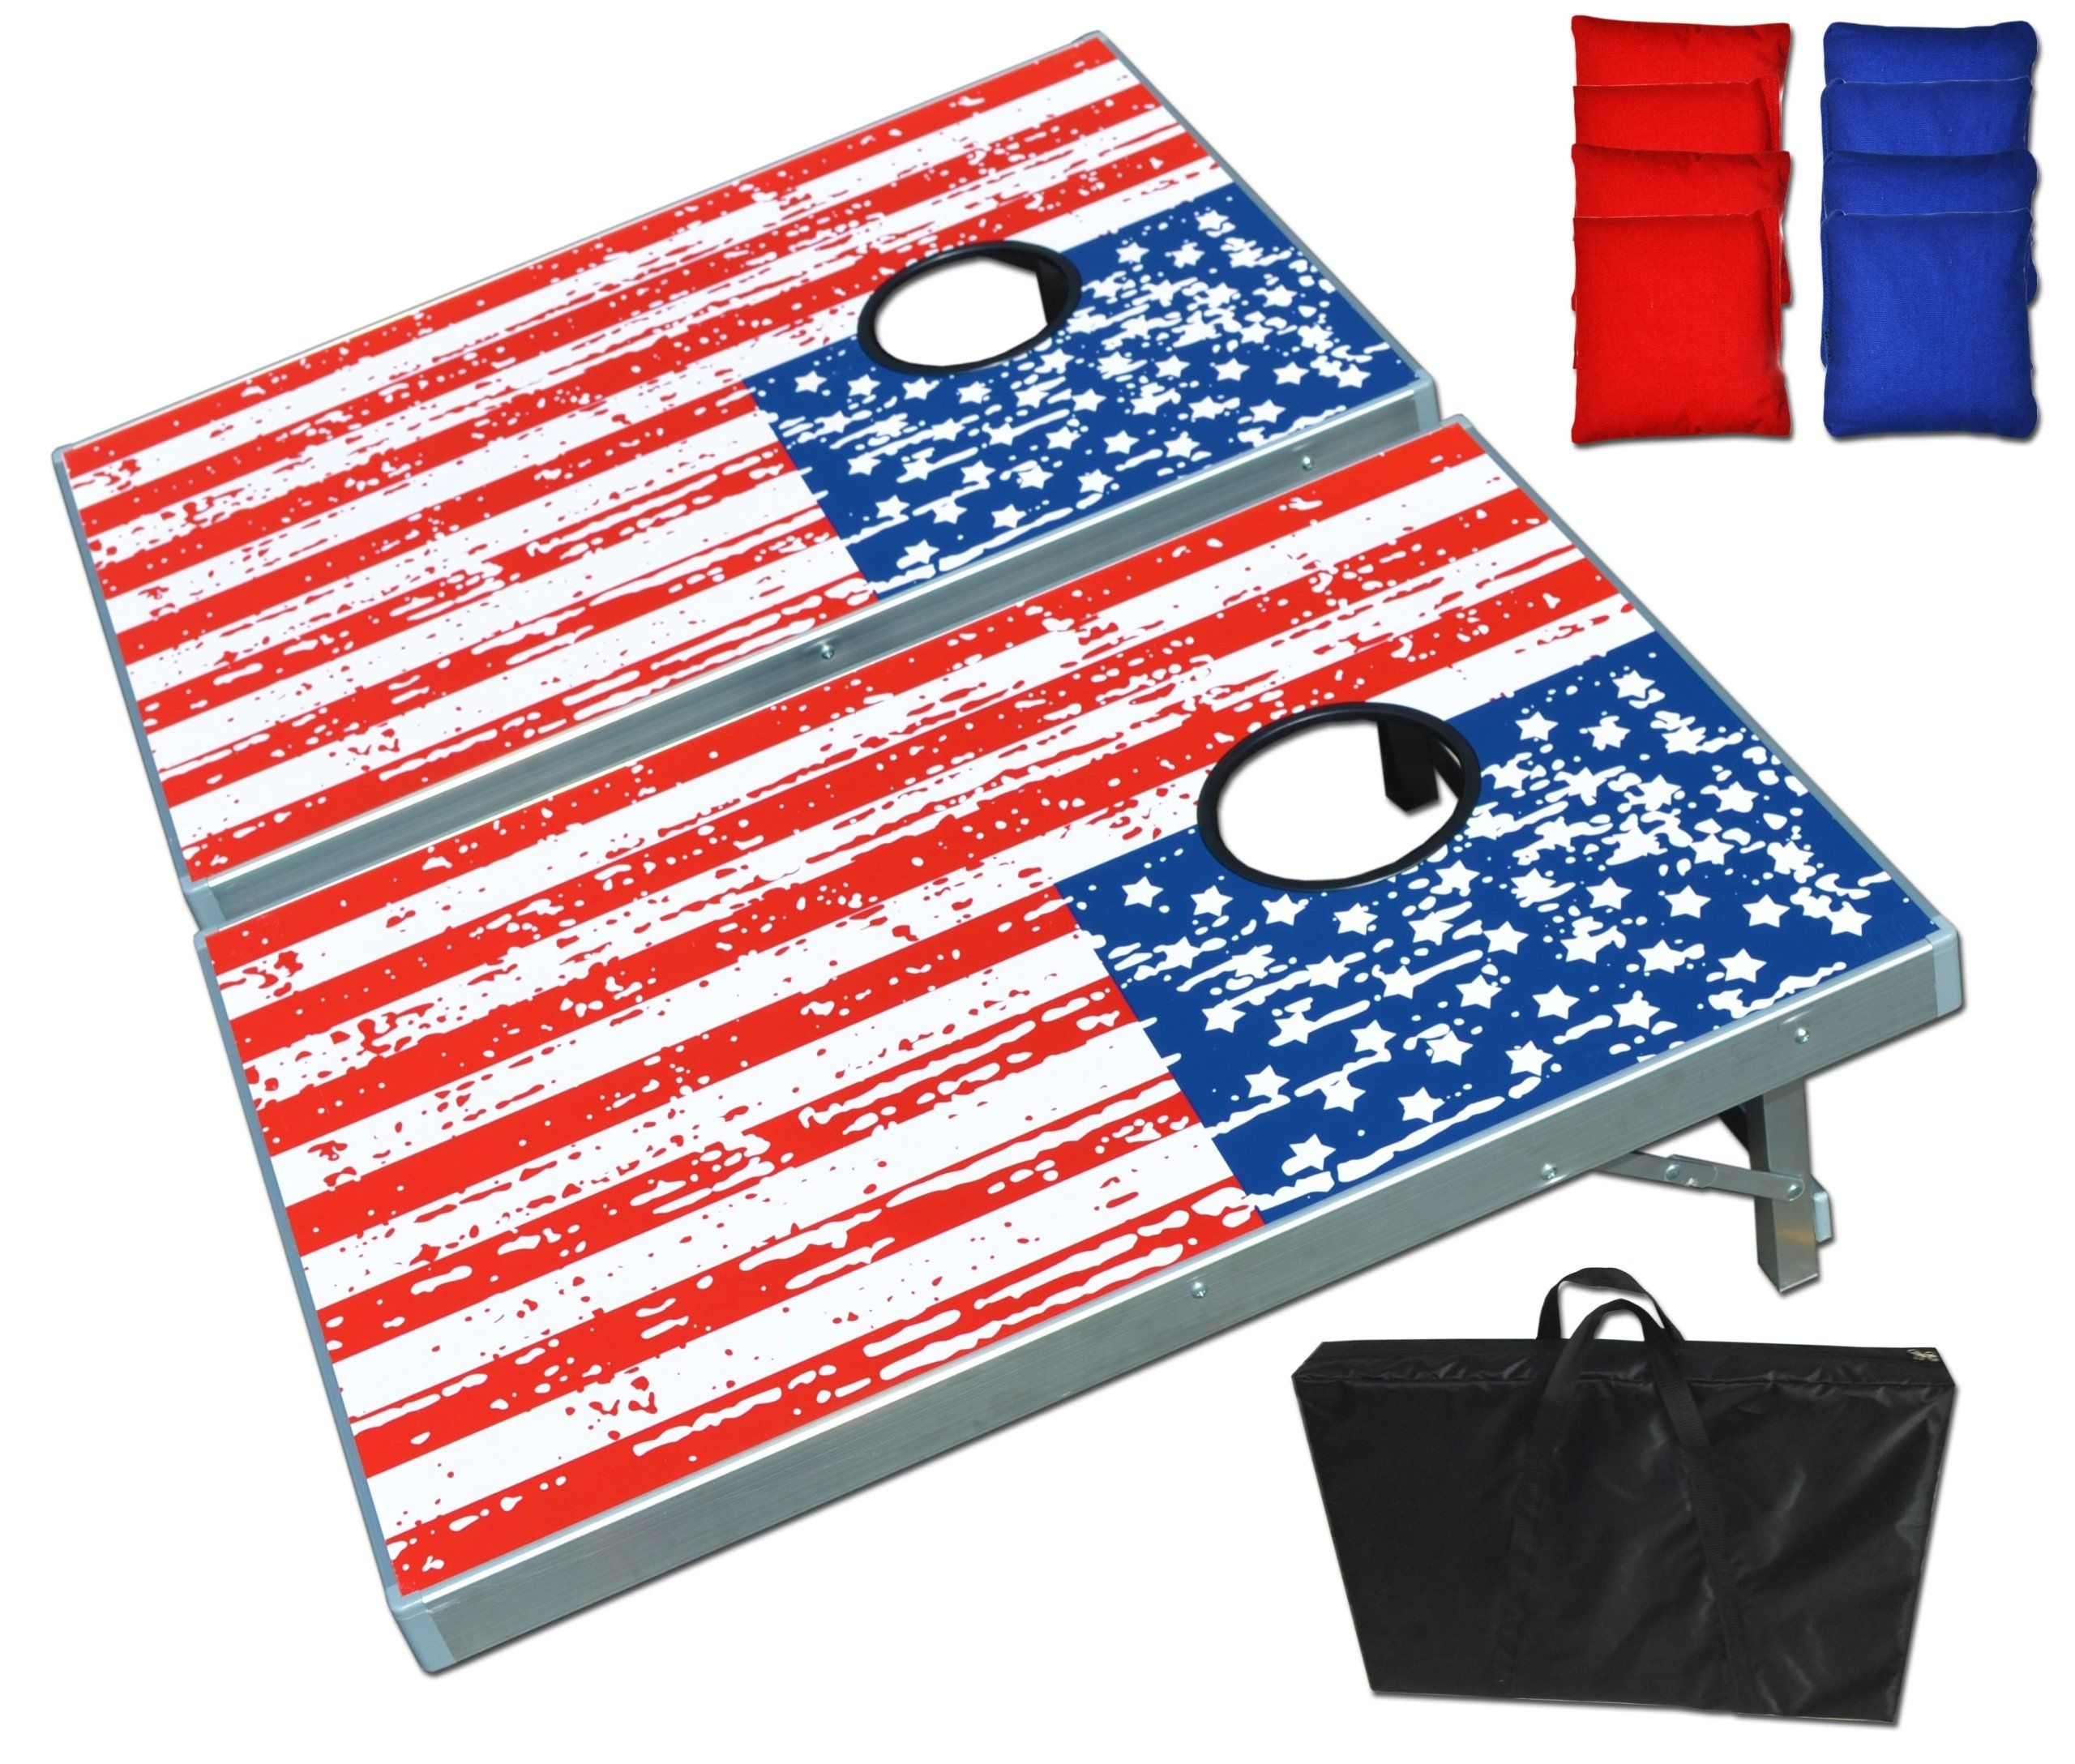 Corn Hole Bean Bag Toss Game Set